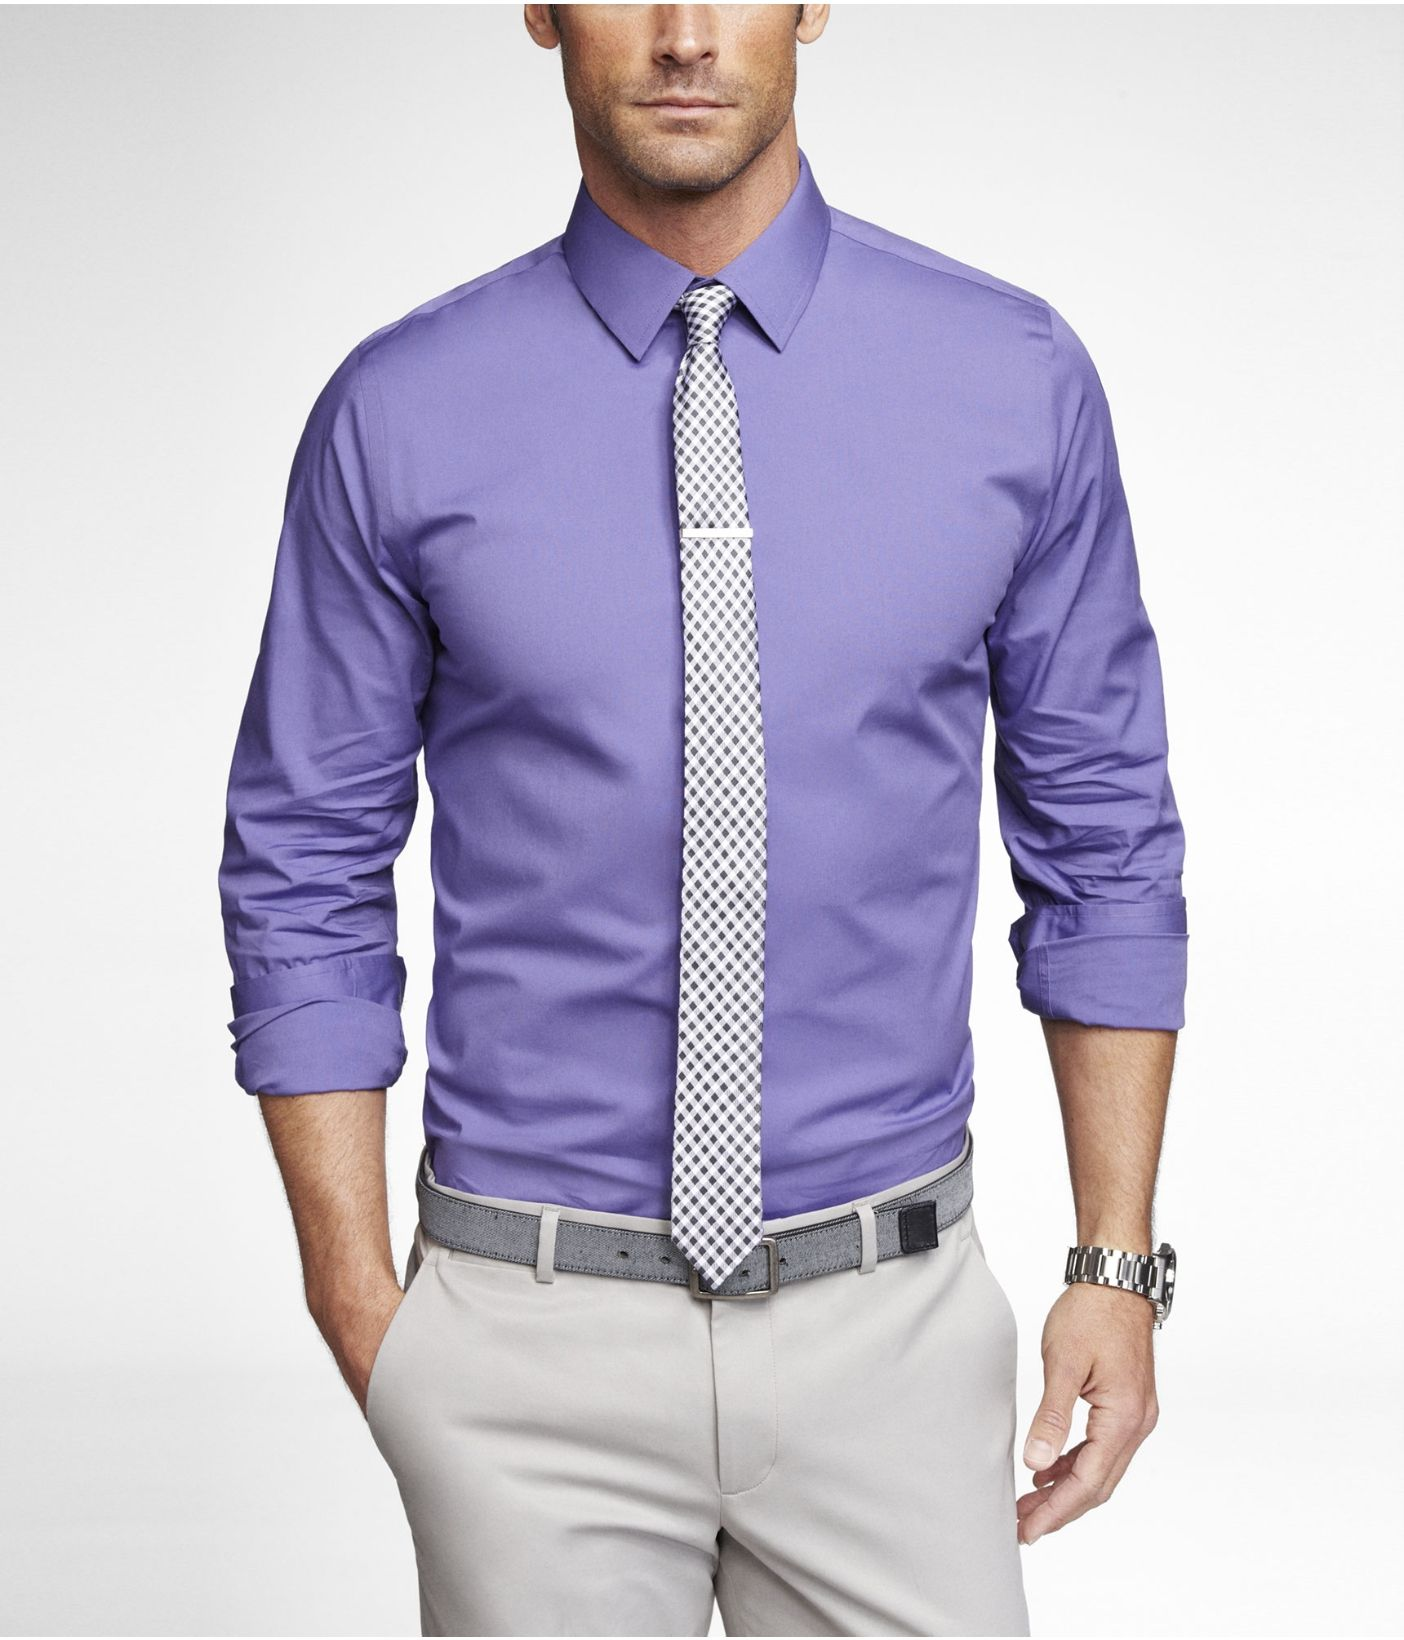 How to buy mens dress shirts